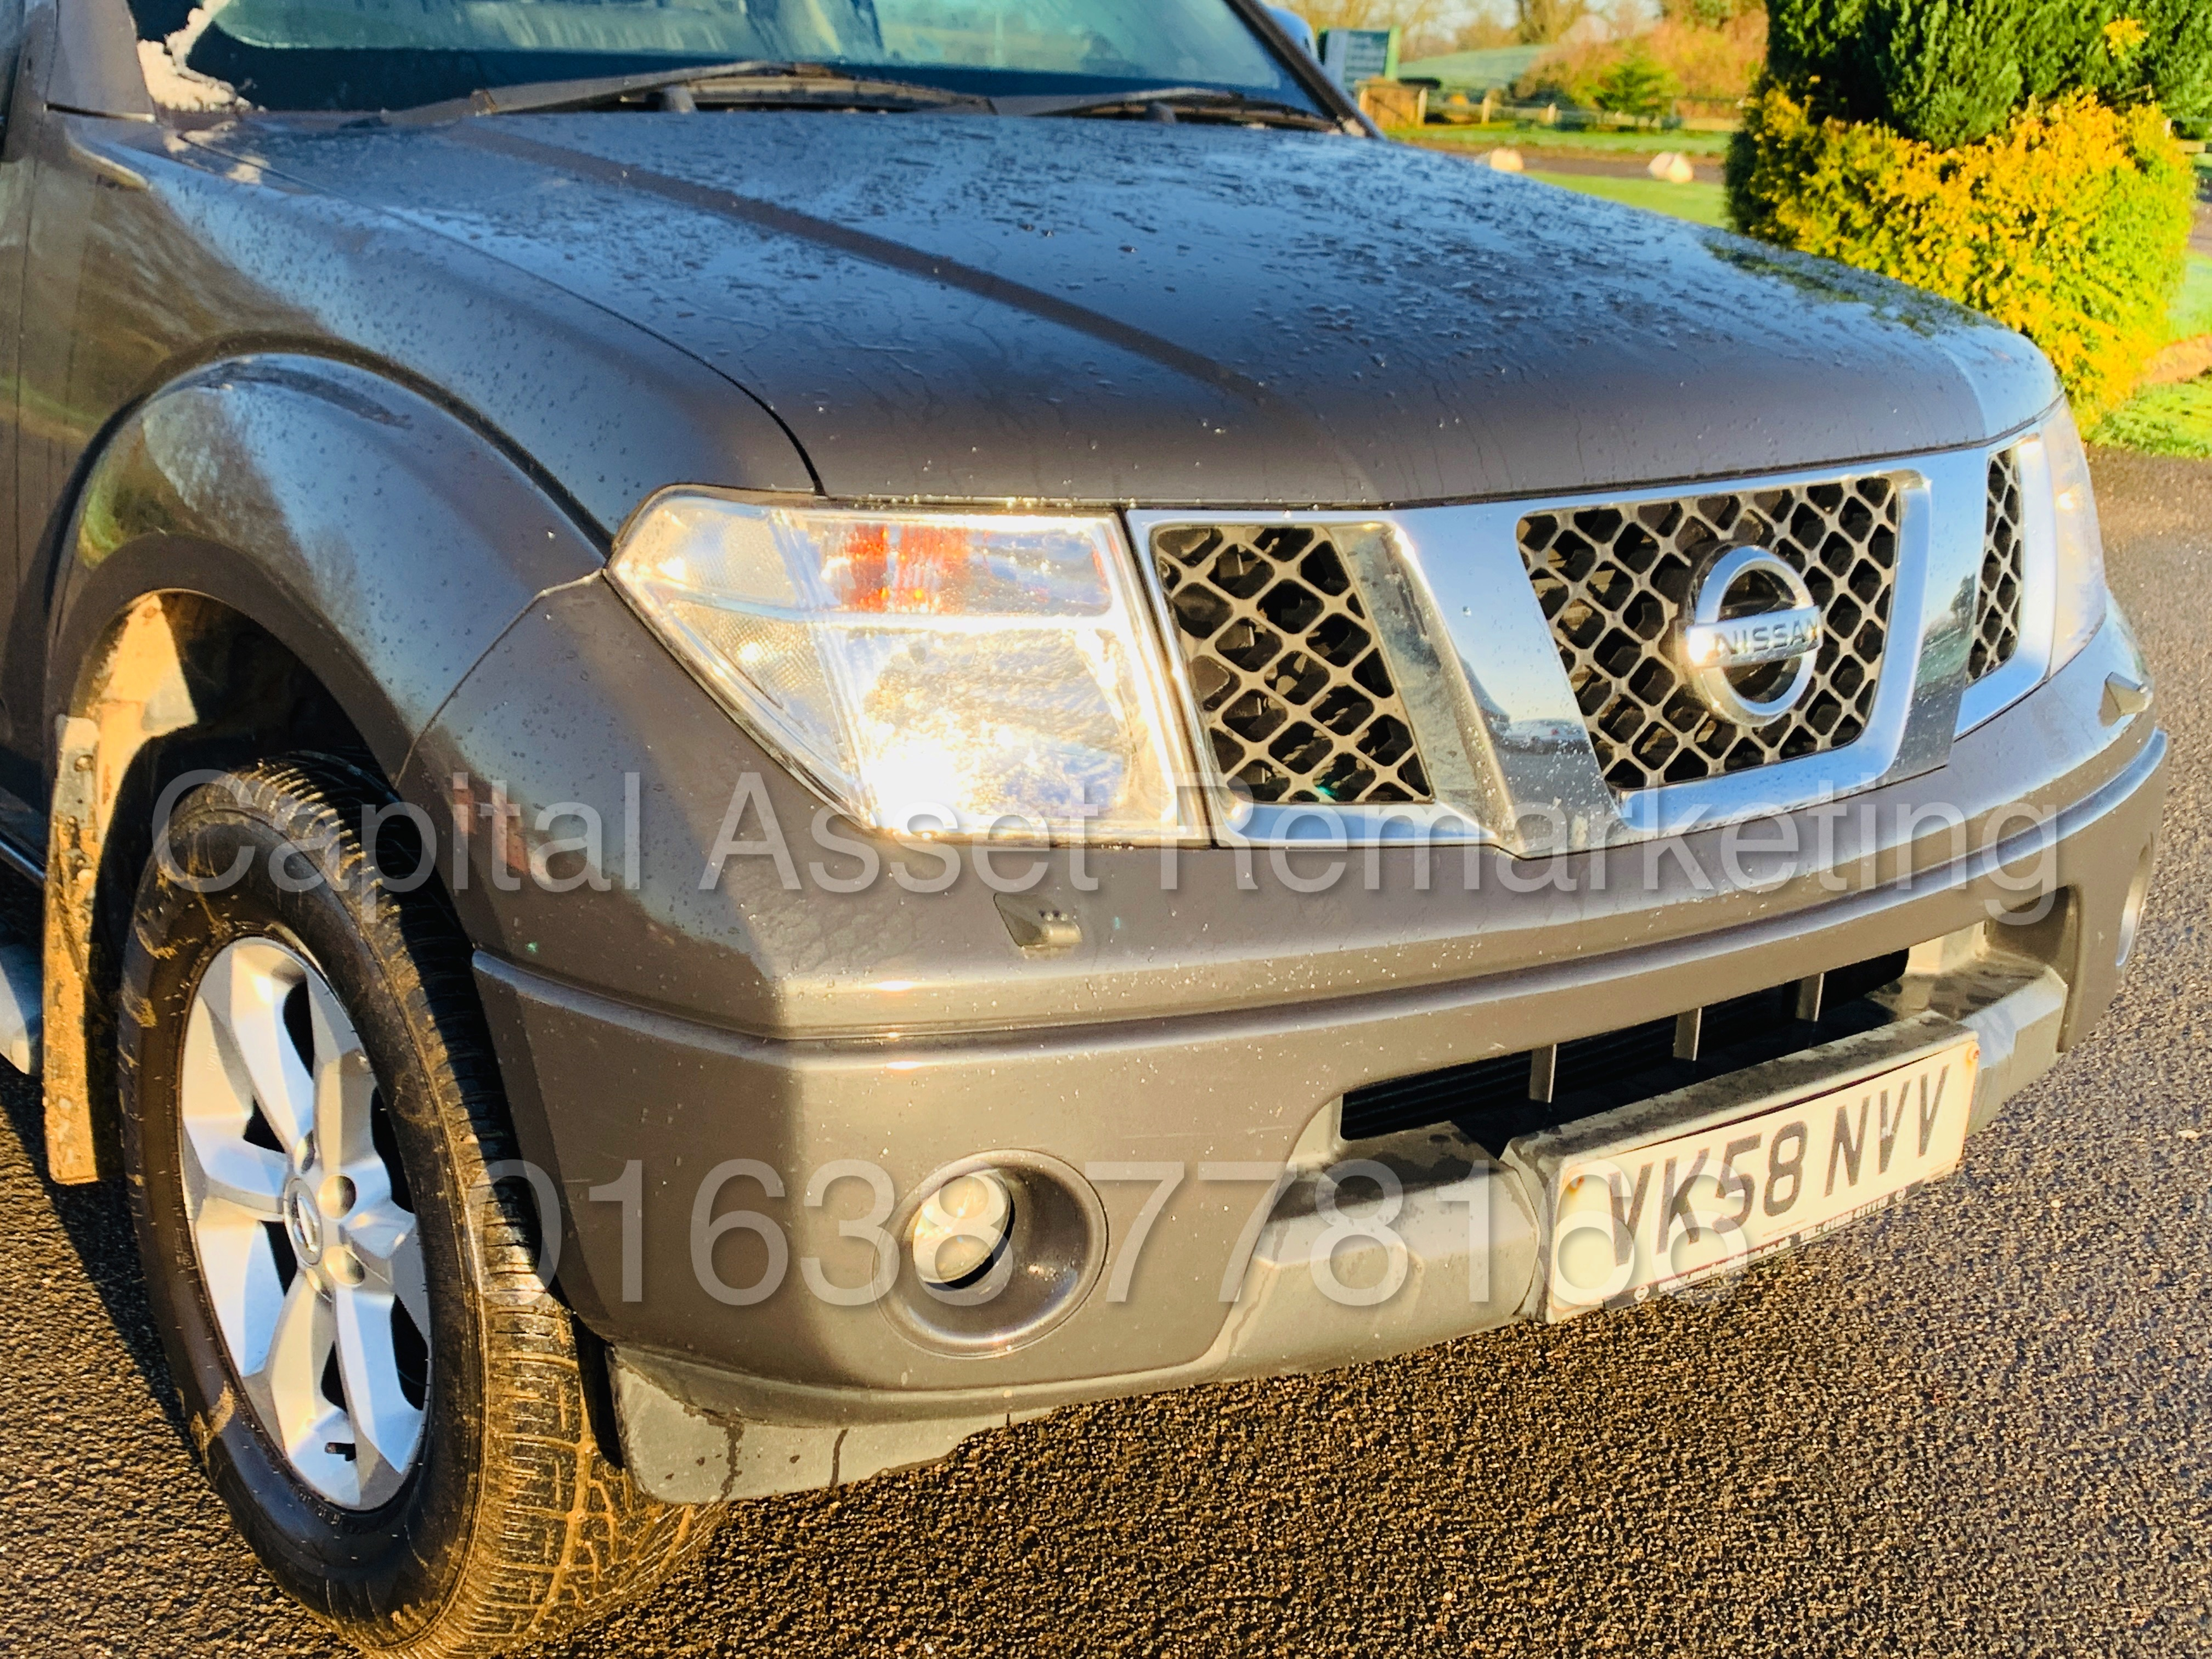 NISSAN NAVARA *OUTLAW* DOUBLE CAB PICK-UP *4X4* (2009) '2.5 DCI-171 BHP- 6 SPEED' *AIR CON* (NO VAT) - Image 14 of 42